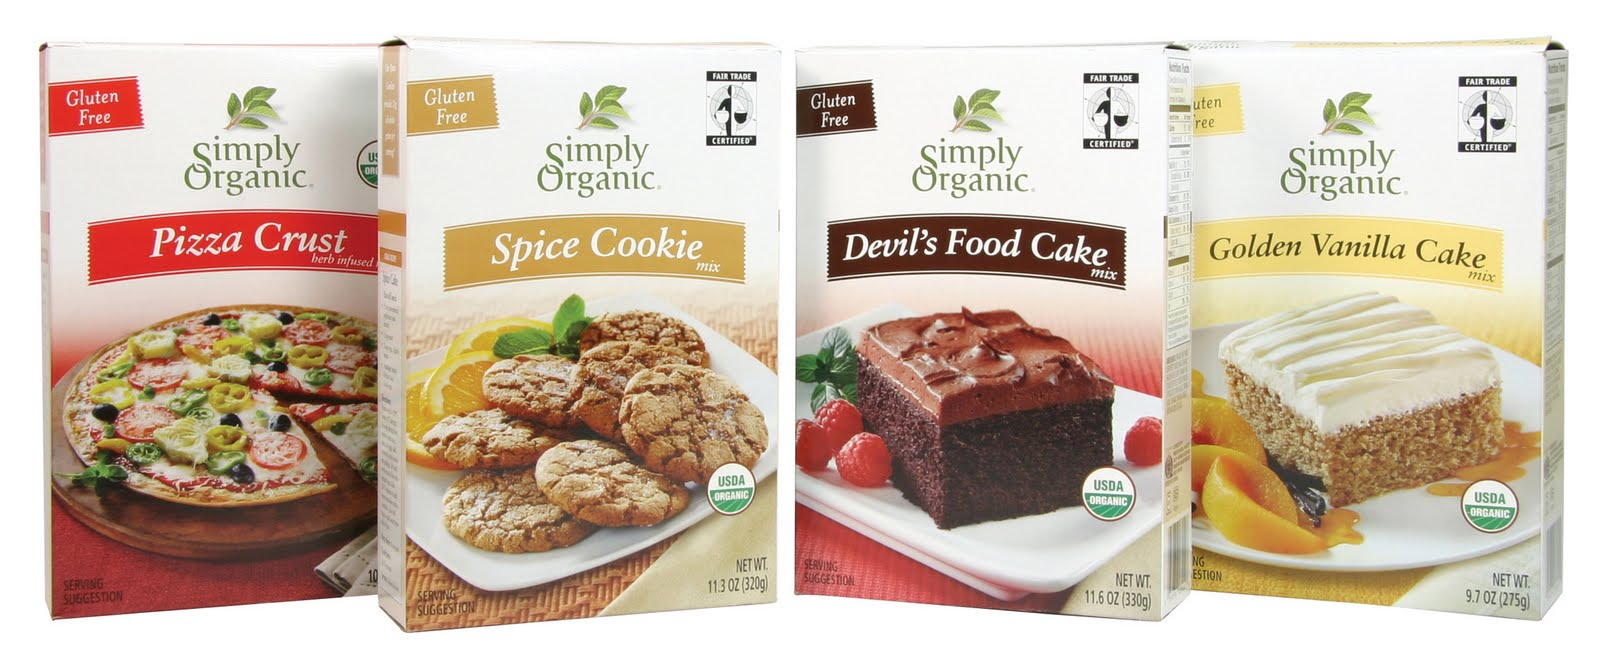 Betty Crocker Spice Cake Mix With Applesauce